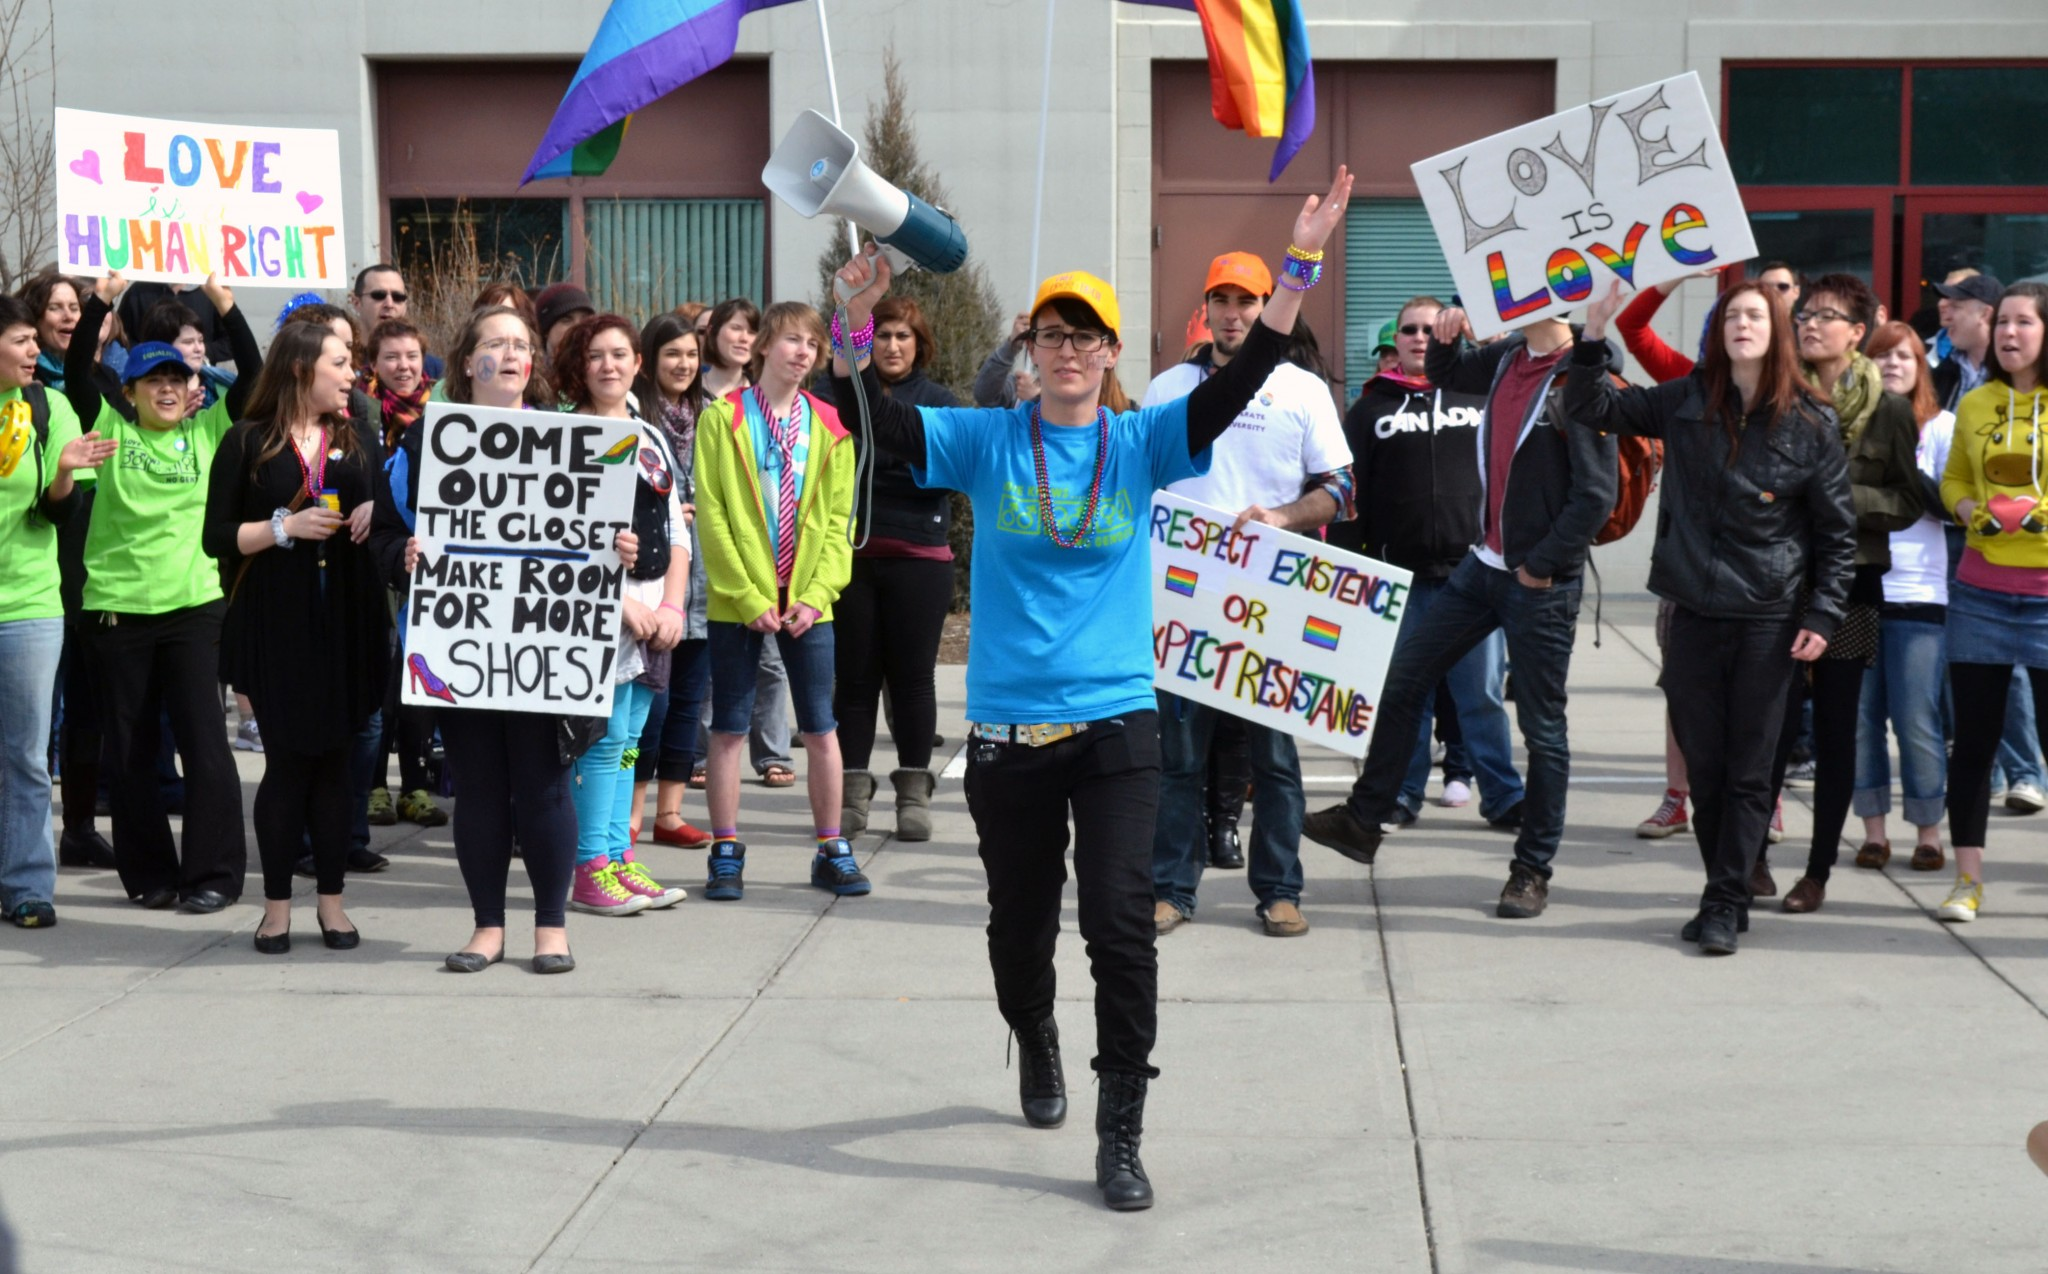 Katelyn Echlin-Scorer (centre in blue shirt), one of the organizers of the first pride parade last year, leads that march across campus. - PHOTO BY SAMANTHA GARVEY